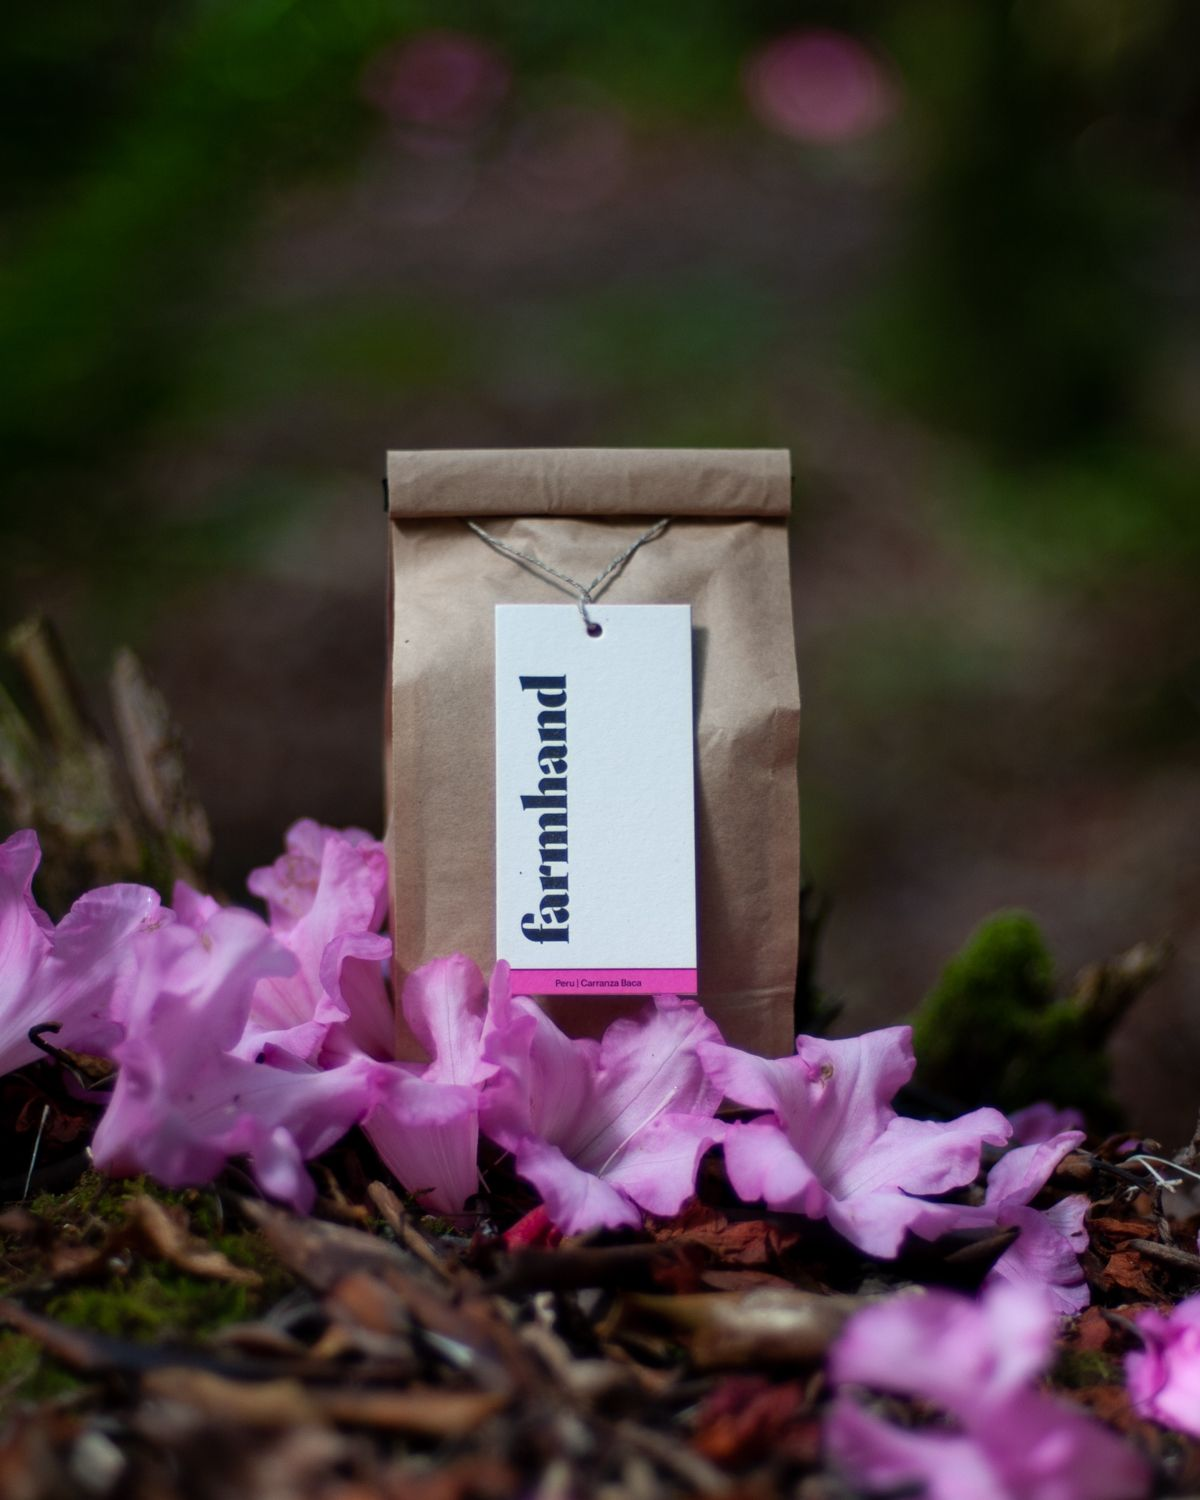 Farmhand Coffee Roasters: Passionately Providing Ethically-Sourced and Transparently-Traded Coffee